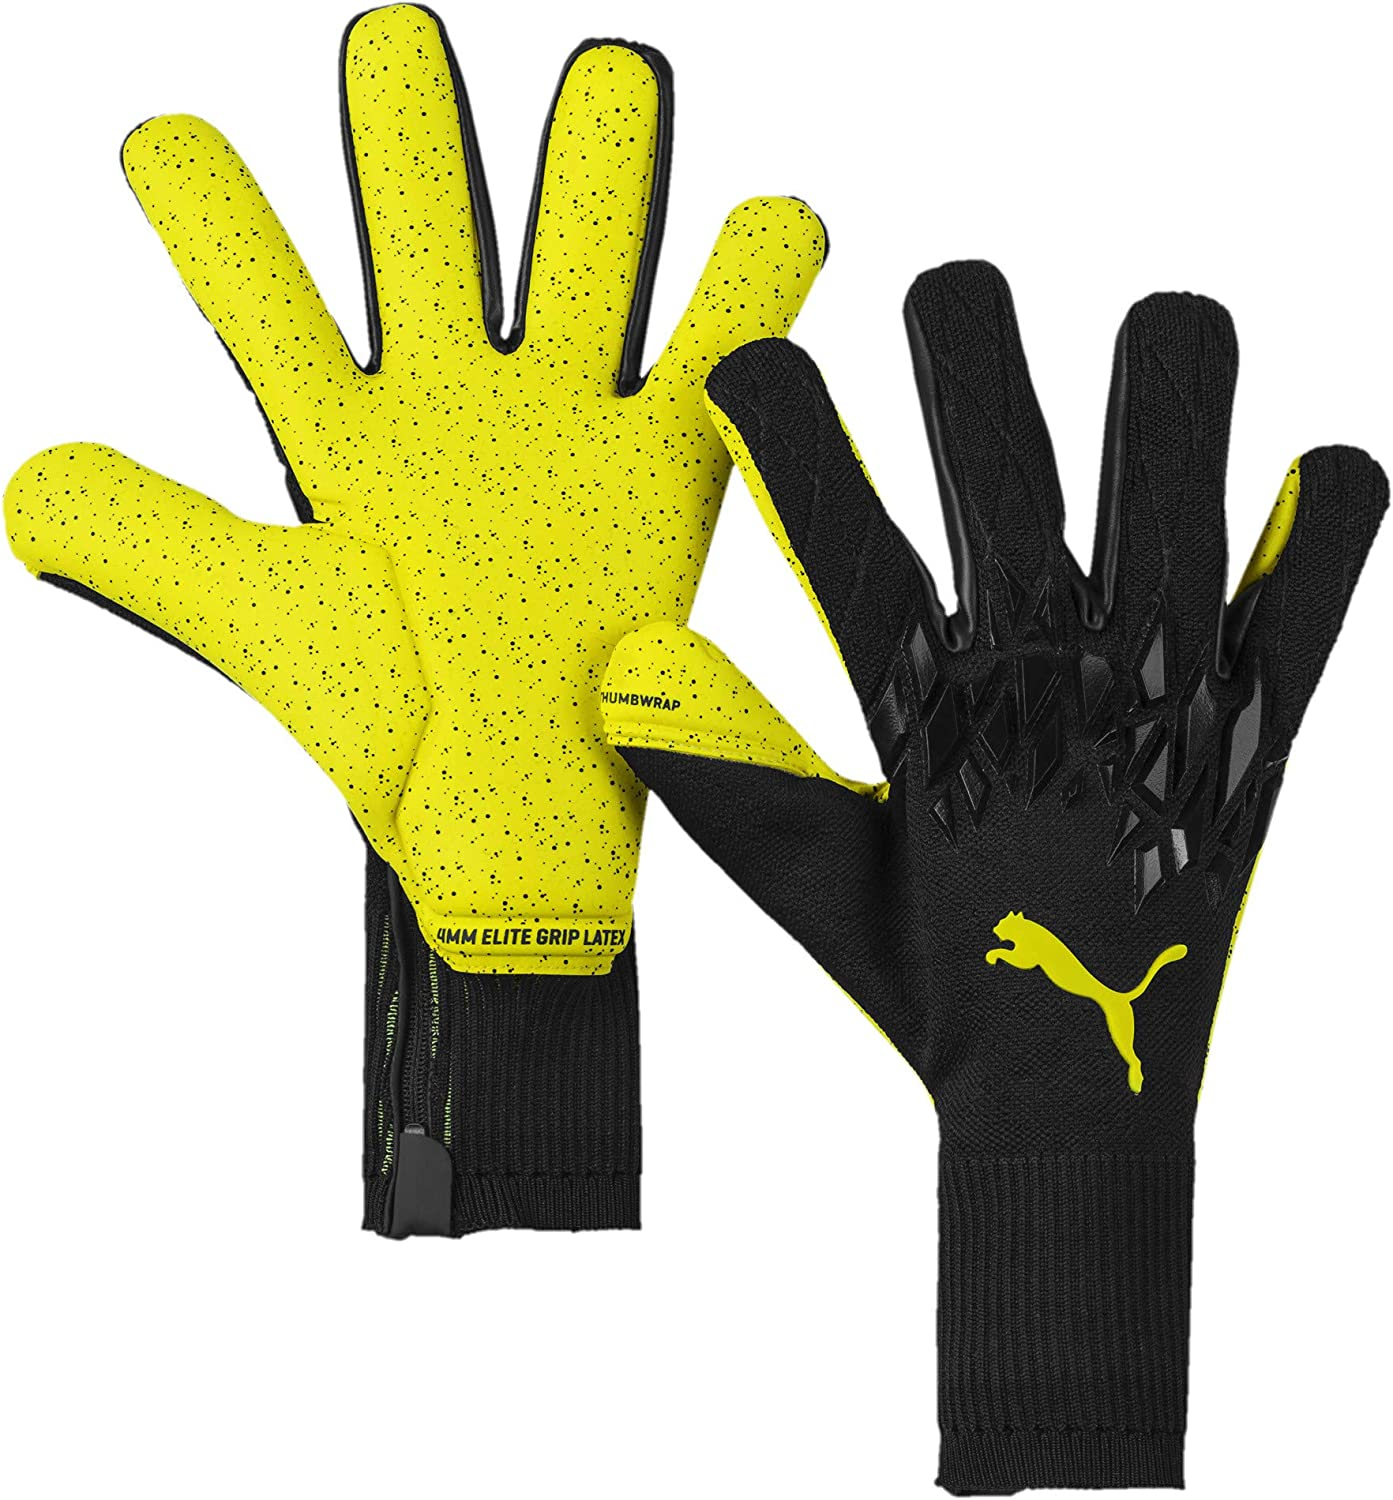 PUMA Future Grip 19.1 Hyper Energy Rush Goalkeeper Gloves